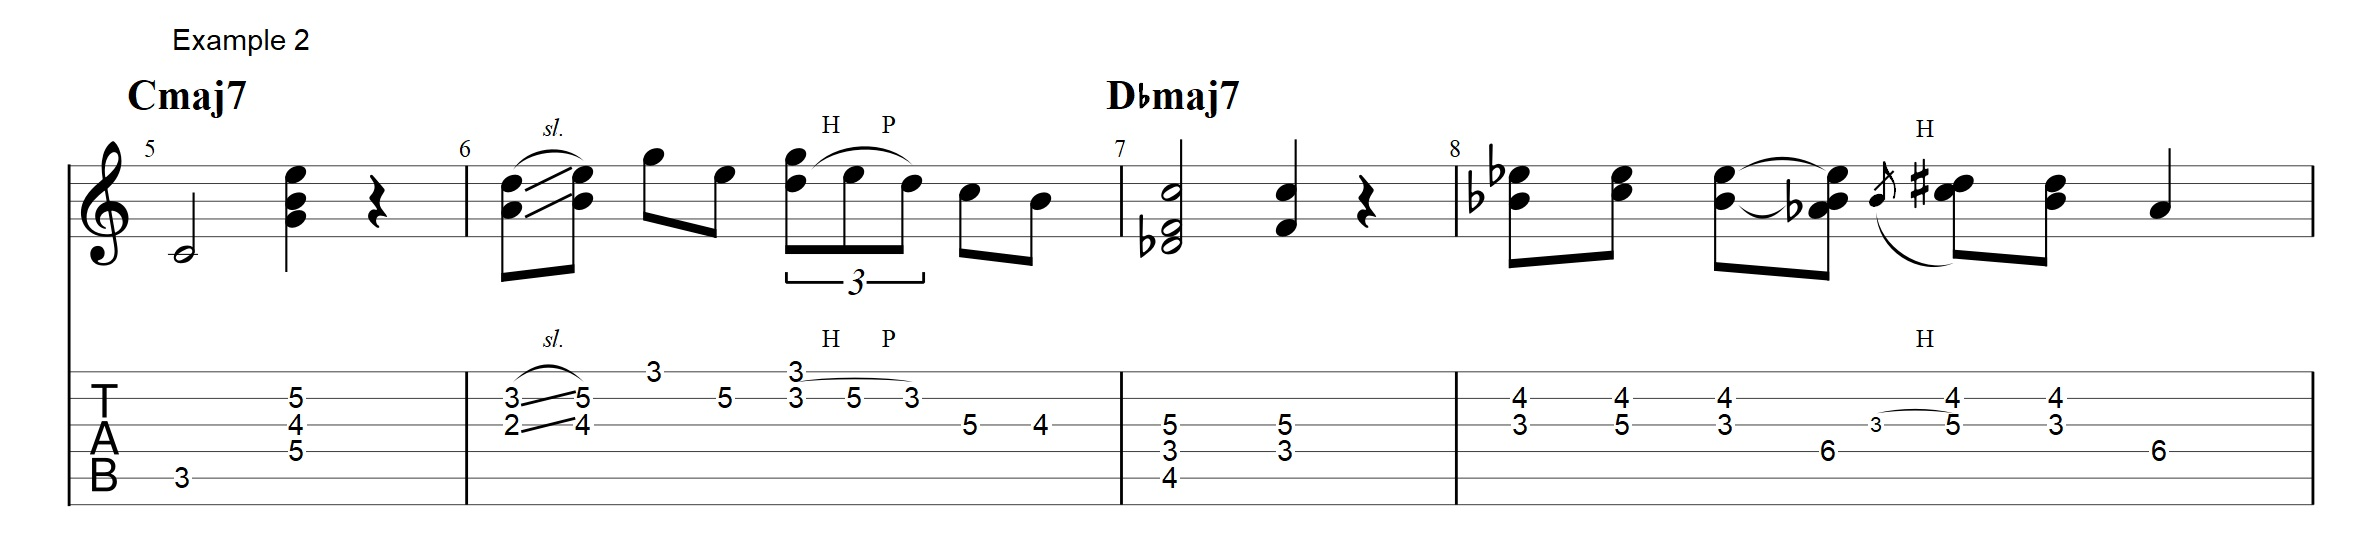 Jazz chords archives jens larsen if we take the chords and try to imagine playing them in the style hendrix might use on his ballads like little wing or wind cries mary then that might buycottarizona Image collections